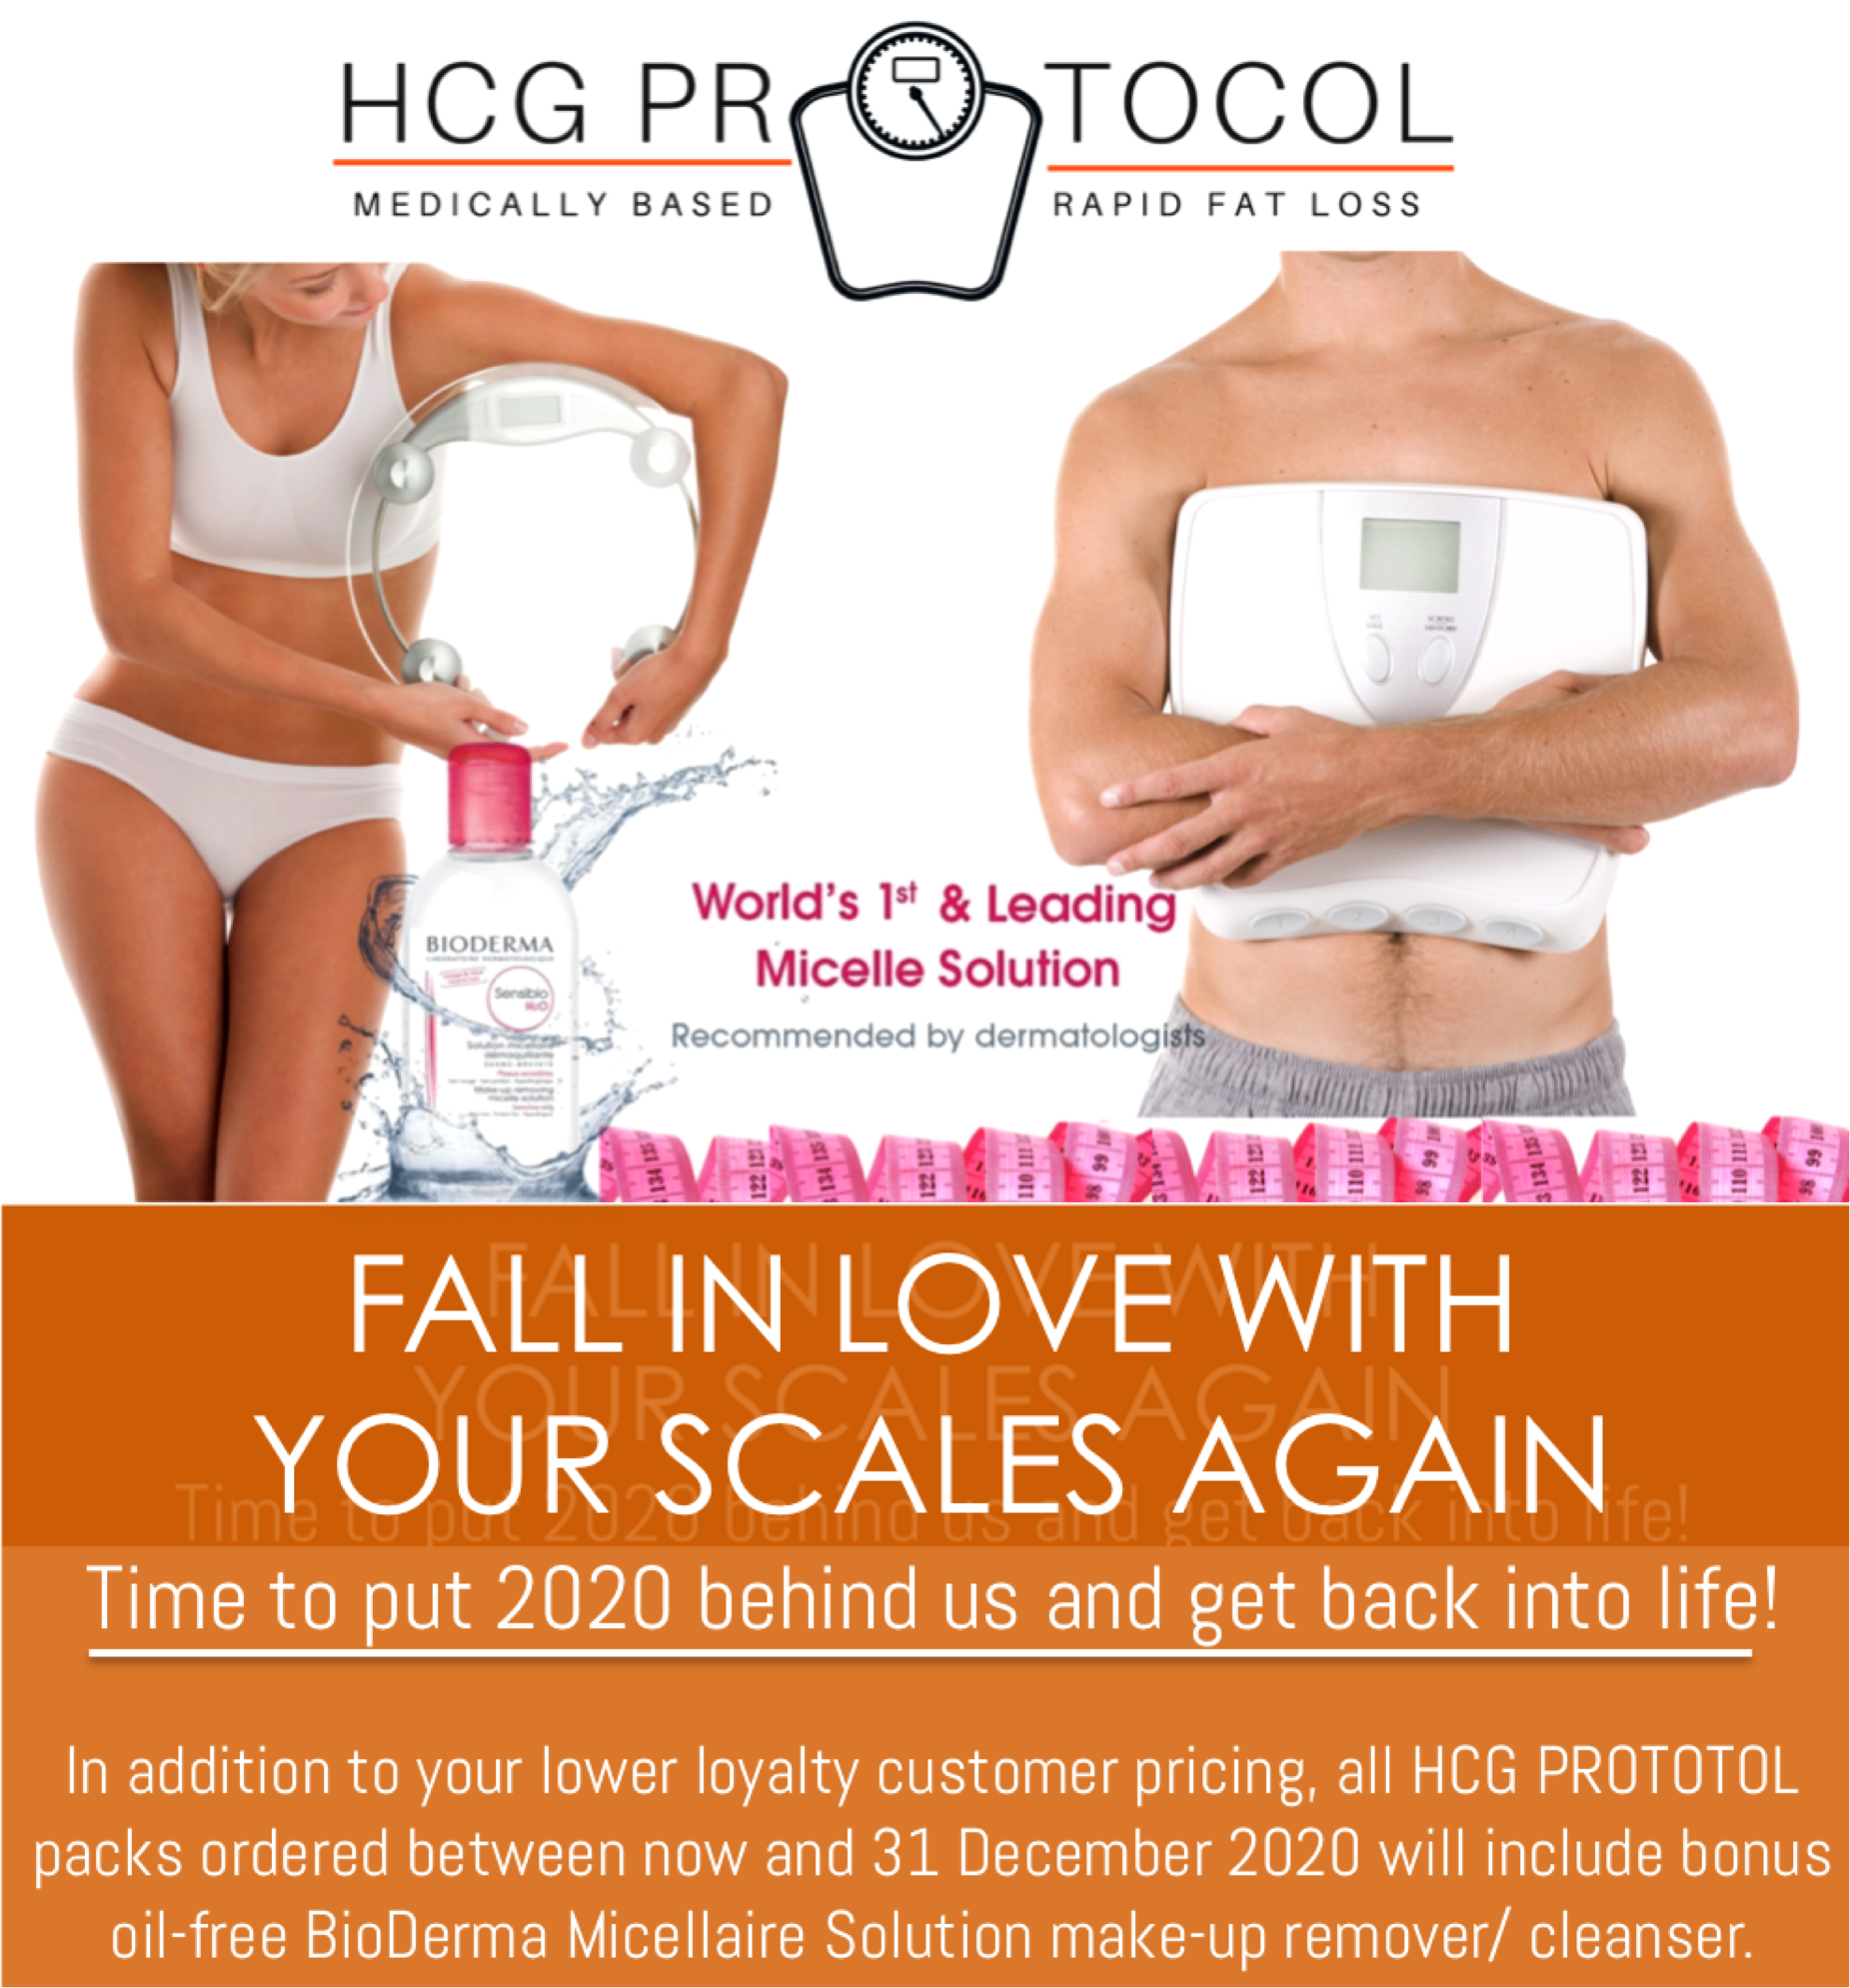 existing cust_Xmas 2020 fall in love with your scales